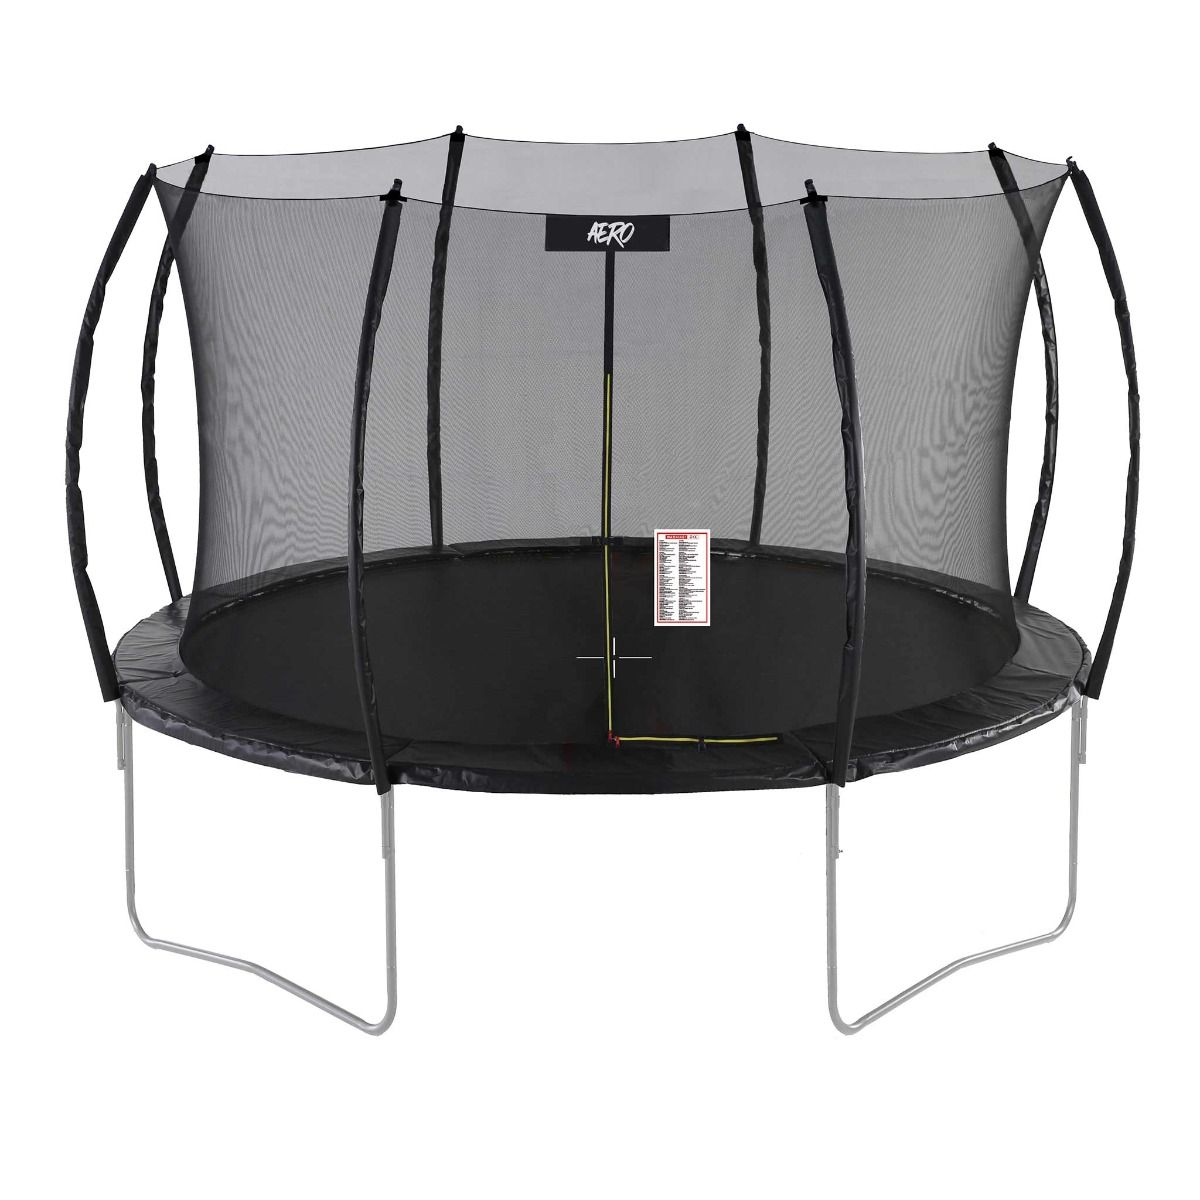 React Aero Trampoline 3,05m with a Safety Net